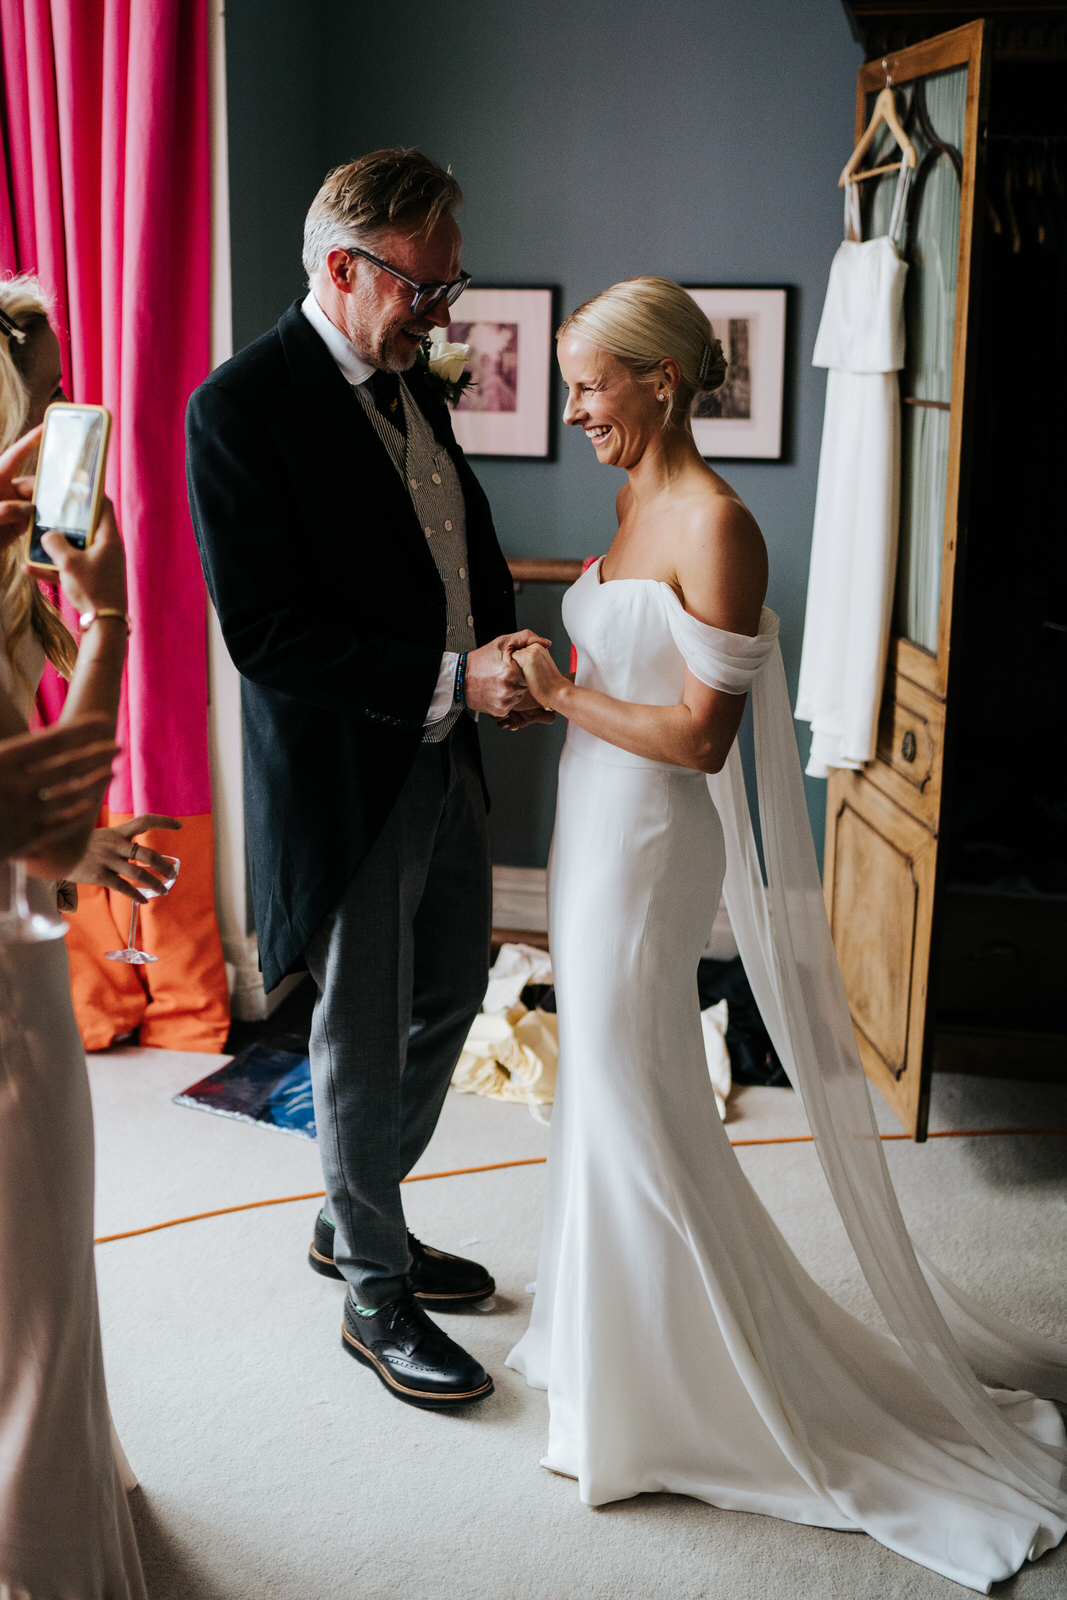 Father of the bride and bride hold hands as he sees her in her dress for the first time